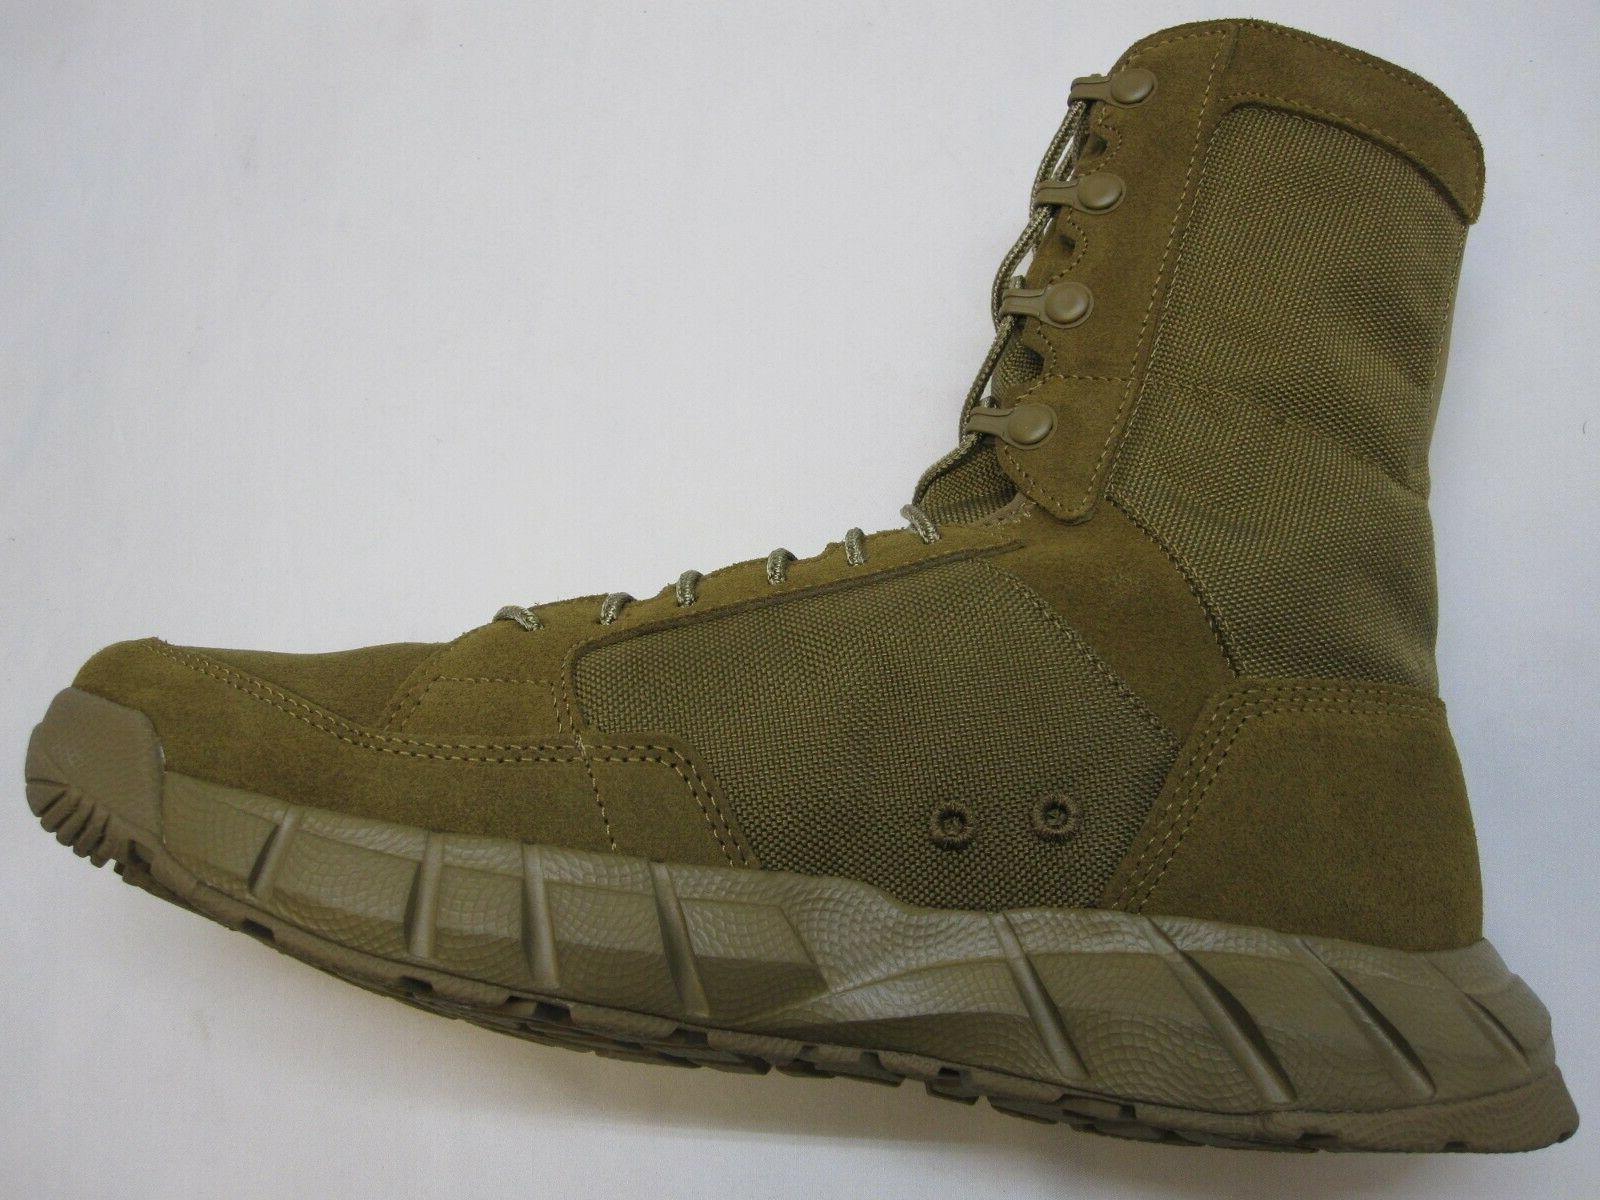 OAKLEY LT 2 ARMY OCP MILITARY BOOTS BOOT